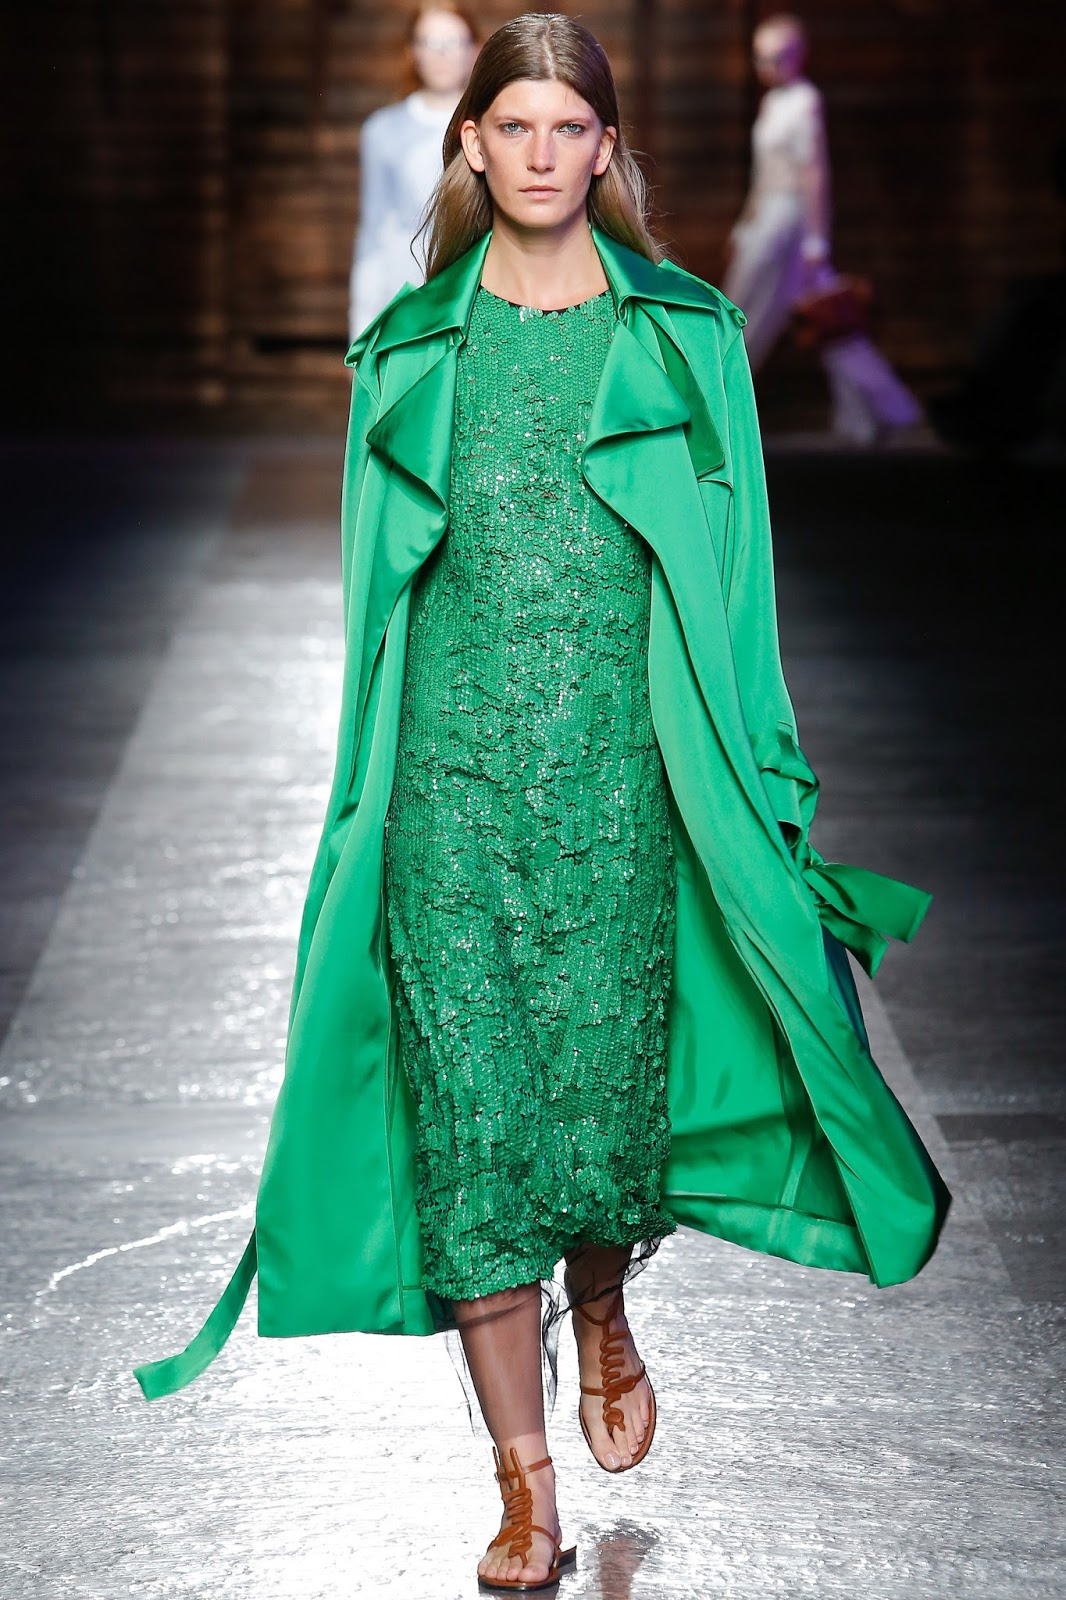 Pantone colour report & spring summer 2016 fashion trends / green flash at Emilio Pucci Spring/Summer 2016 via www.fashionedbylove.co.uk British fashion & style blog